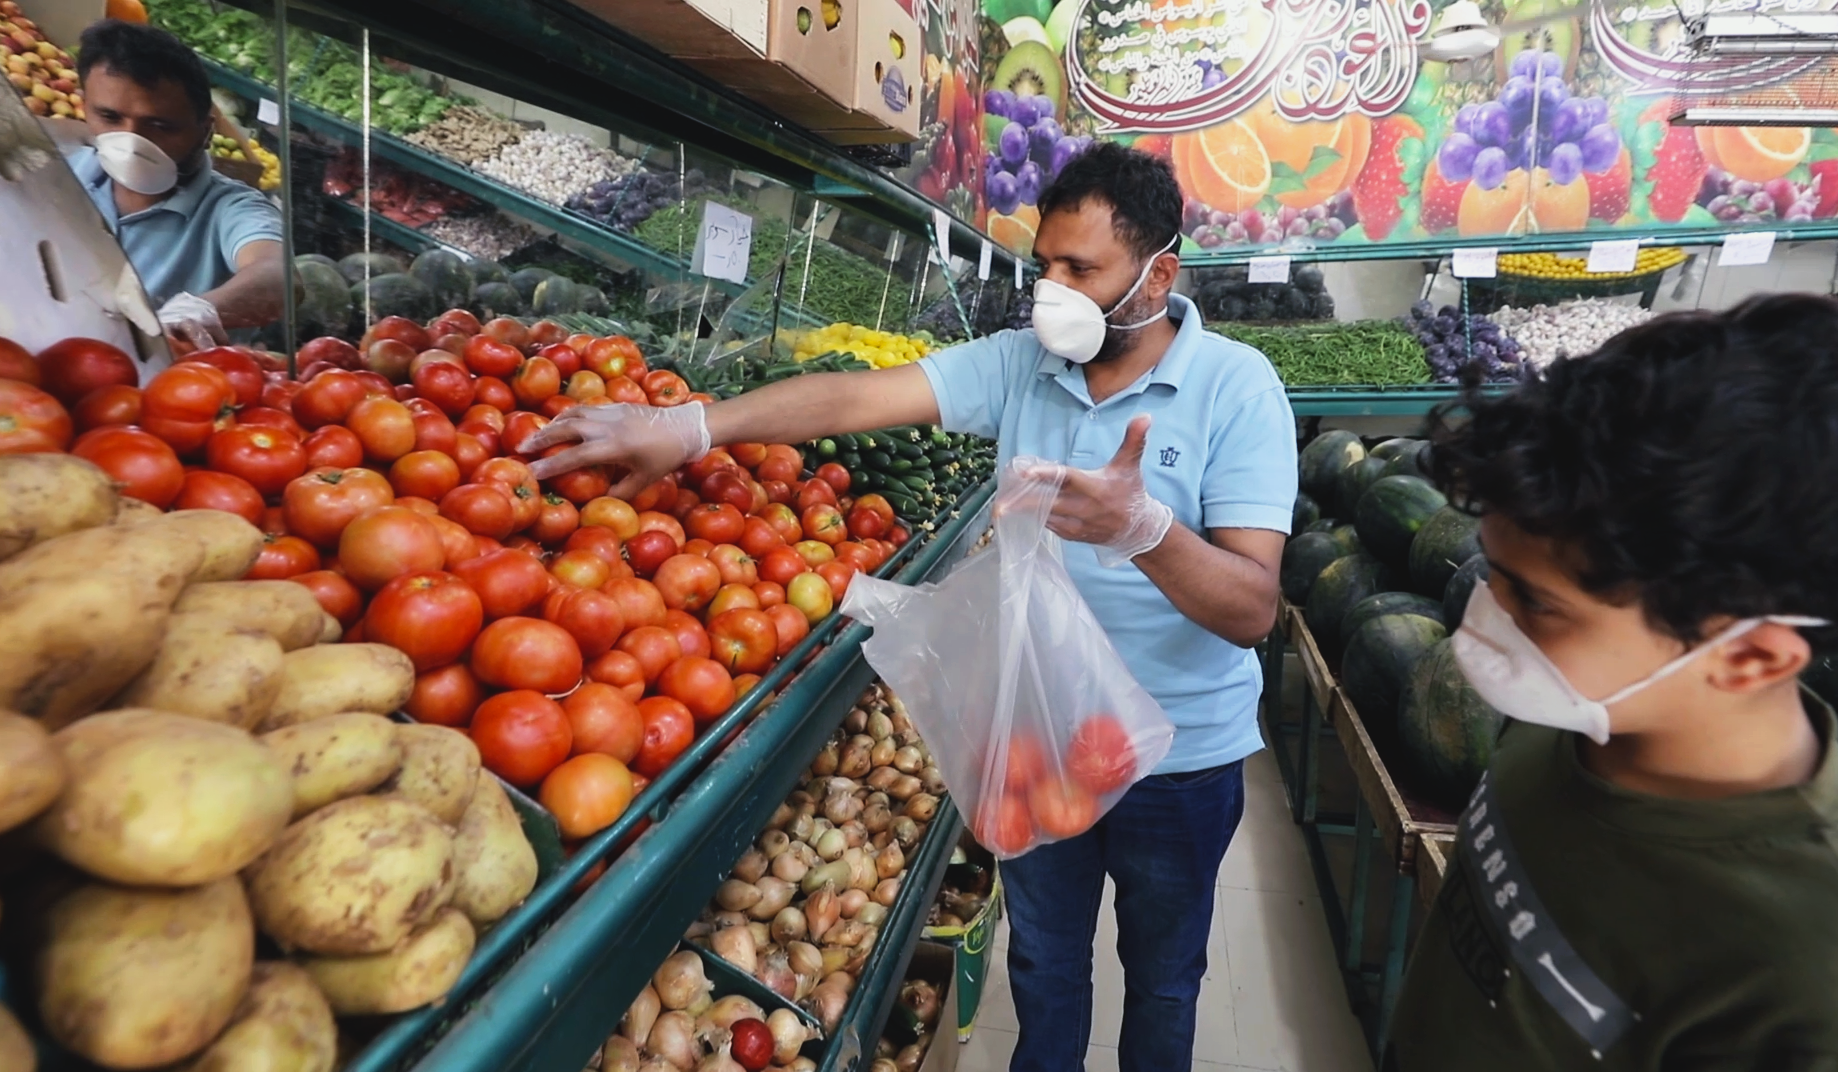 Abdou, a Yemeni refugee in Amman, shops in one of the grocery after the reopening of small shops.